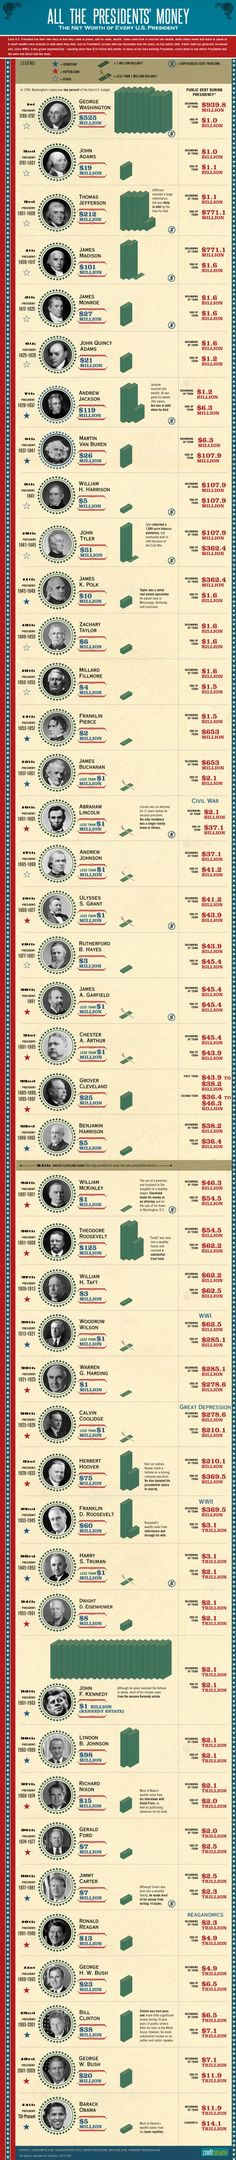 All the Presidents' Money, the net worth of every president and the national debt at the beginning and end of each presidency